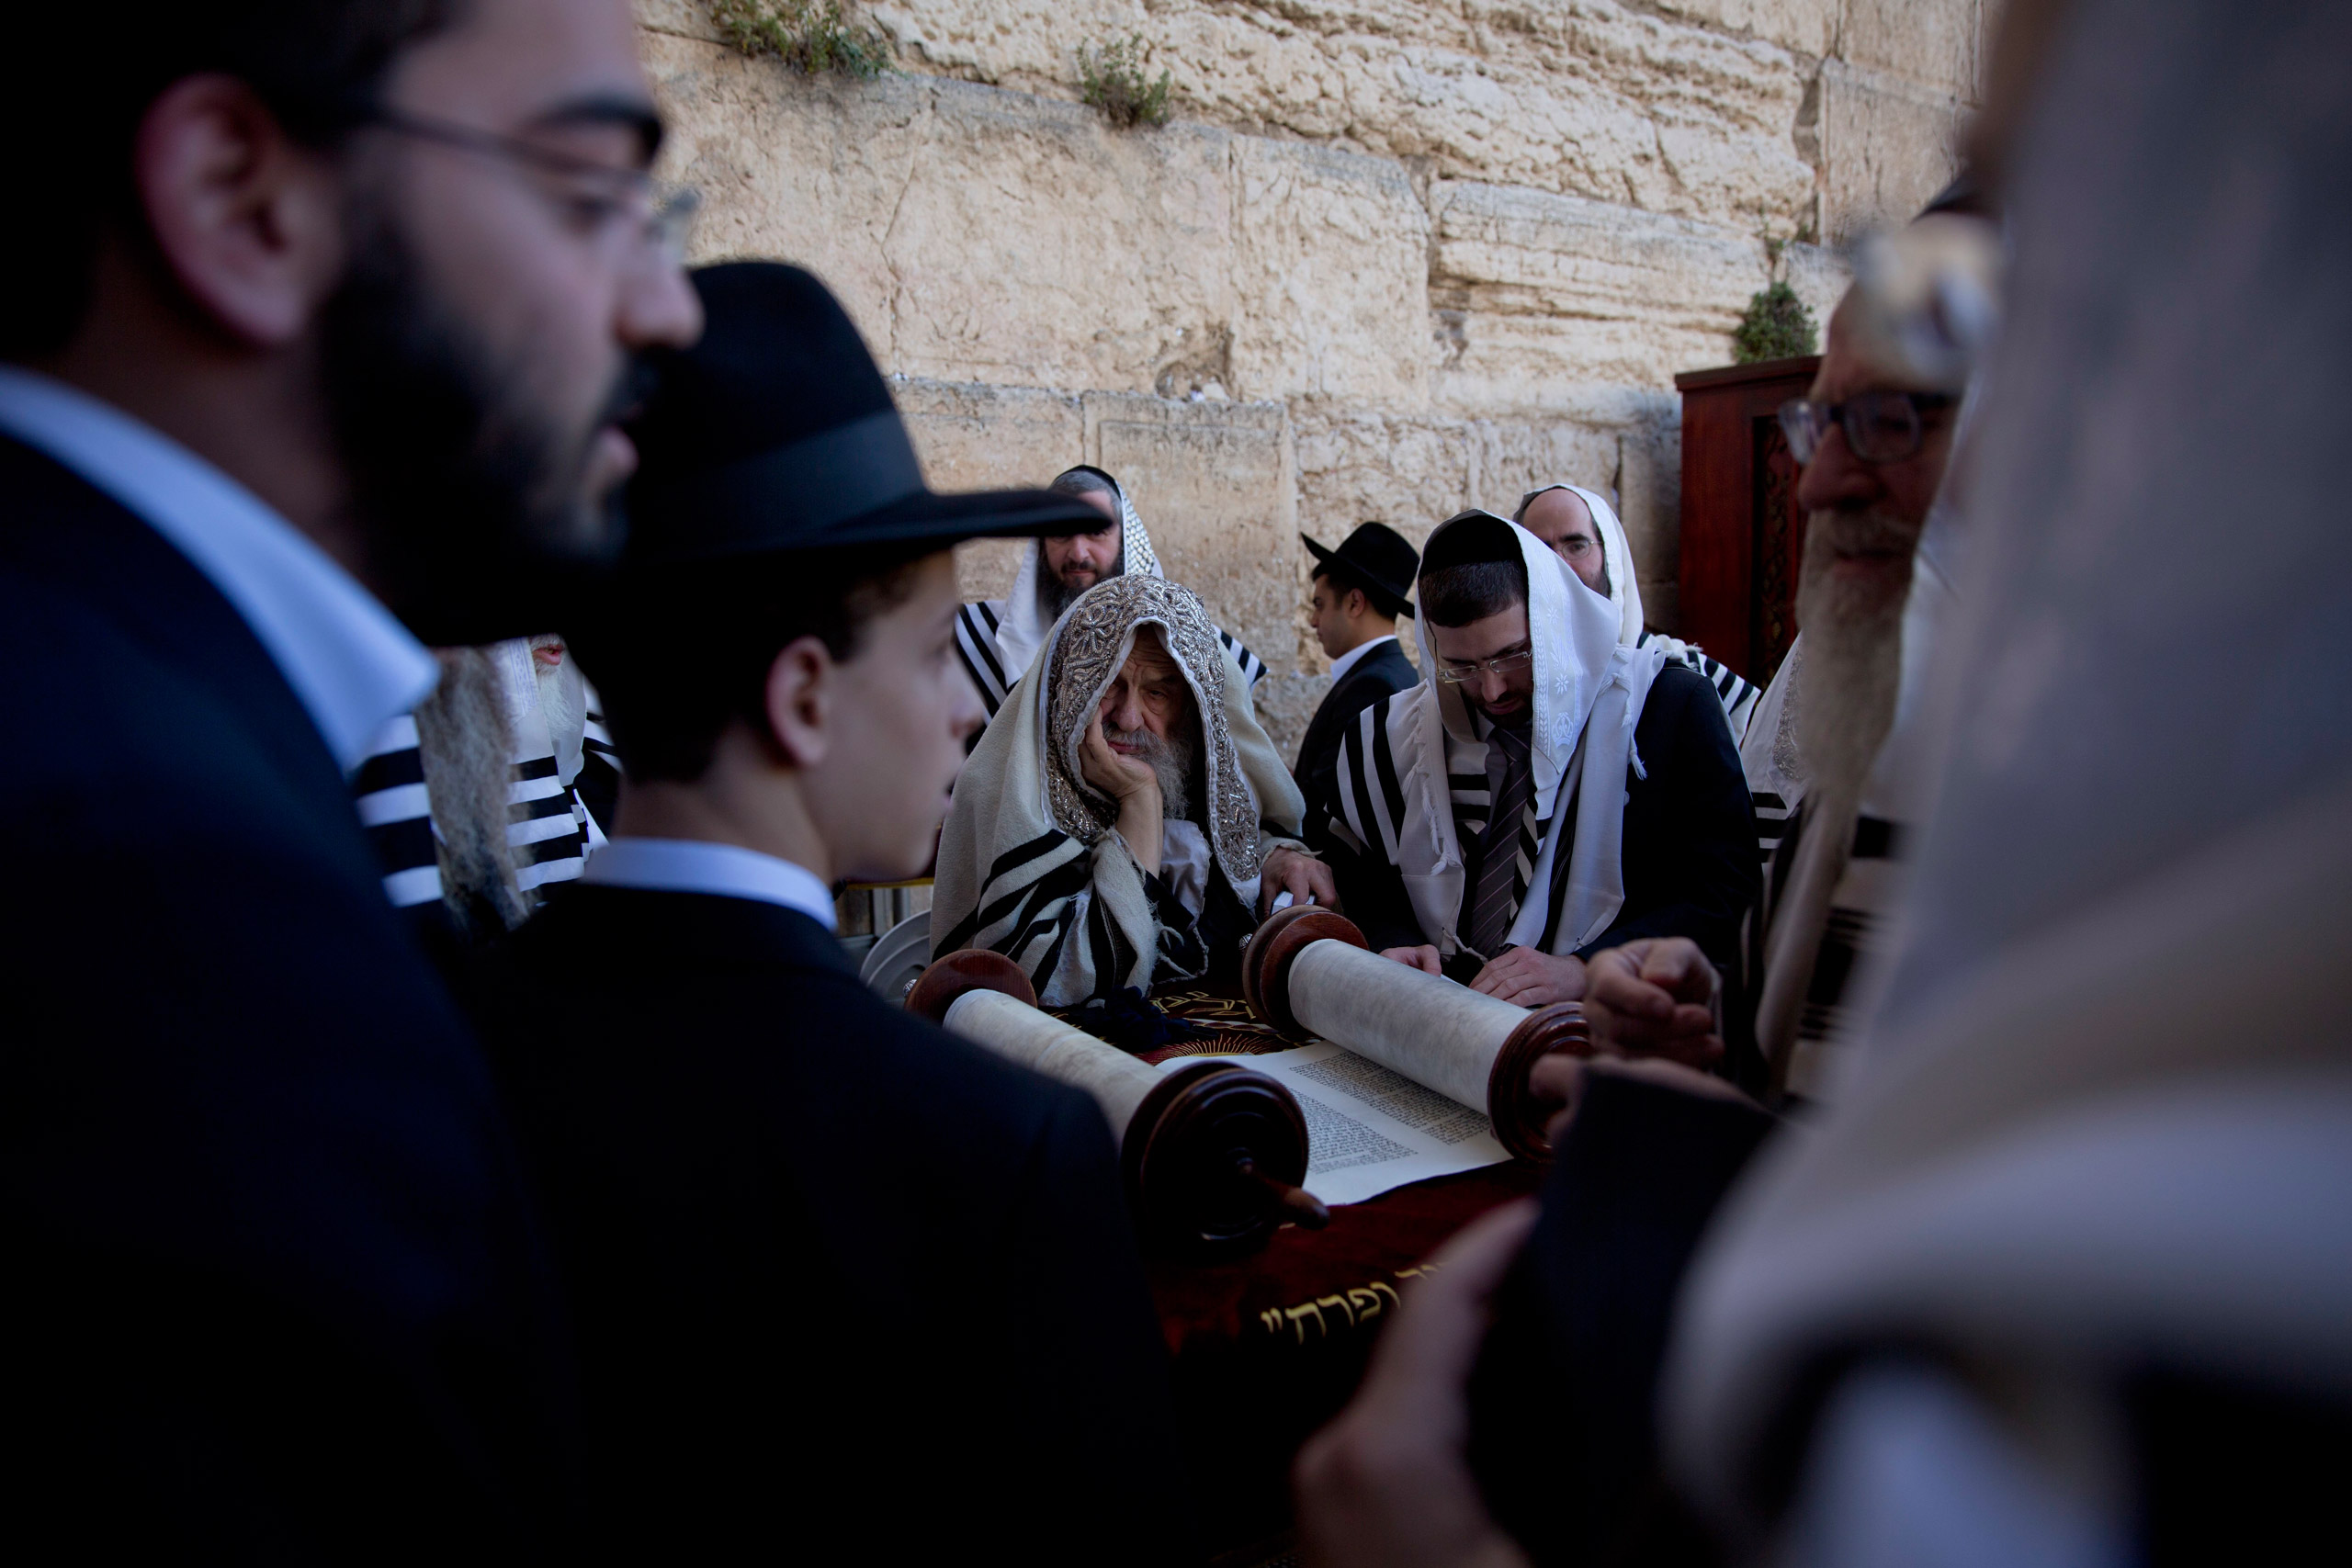 Covered in prayer shawls, ultra-Orthodox Jewish men read from a Thora scroll during the Jewish holiday of Passover in front of the Western Wall, the holiest site where Jews can pray, in Jerusalem's Old City on April 24, 2016.